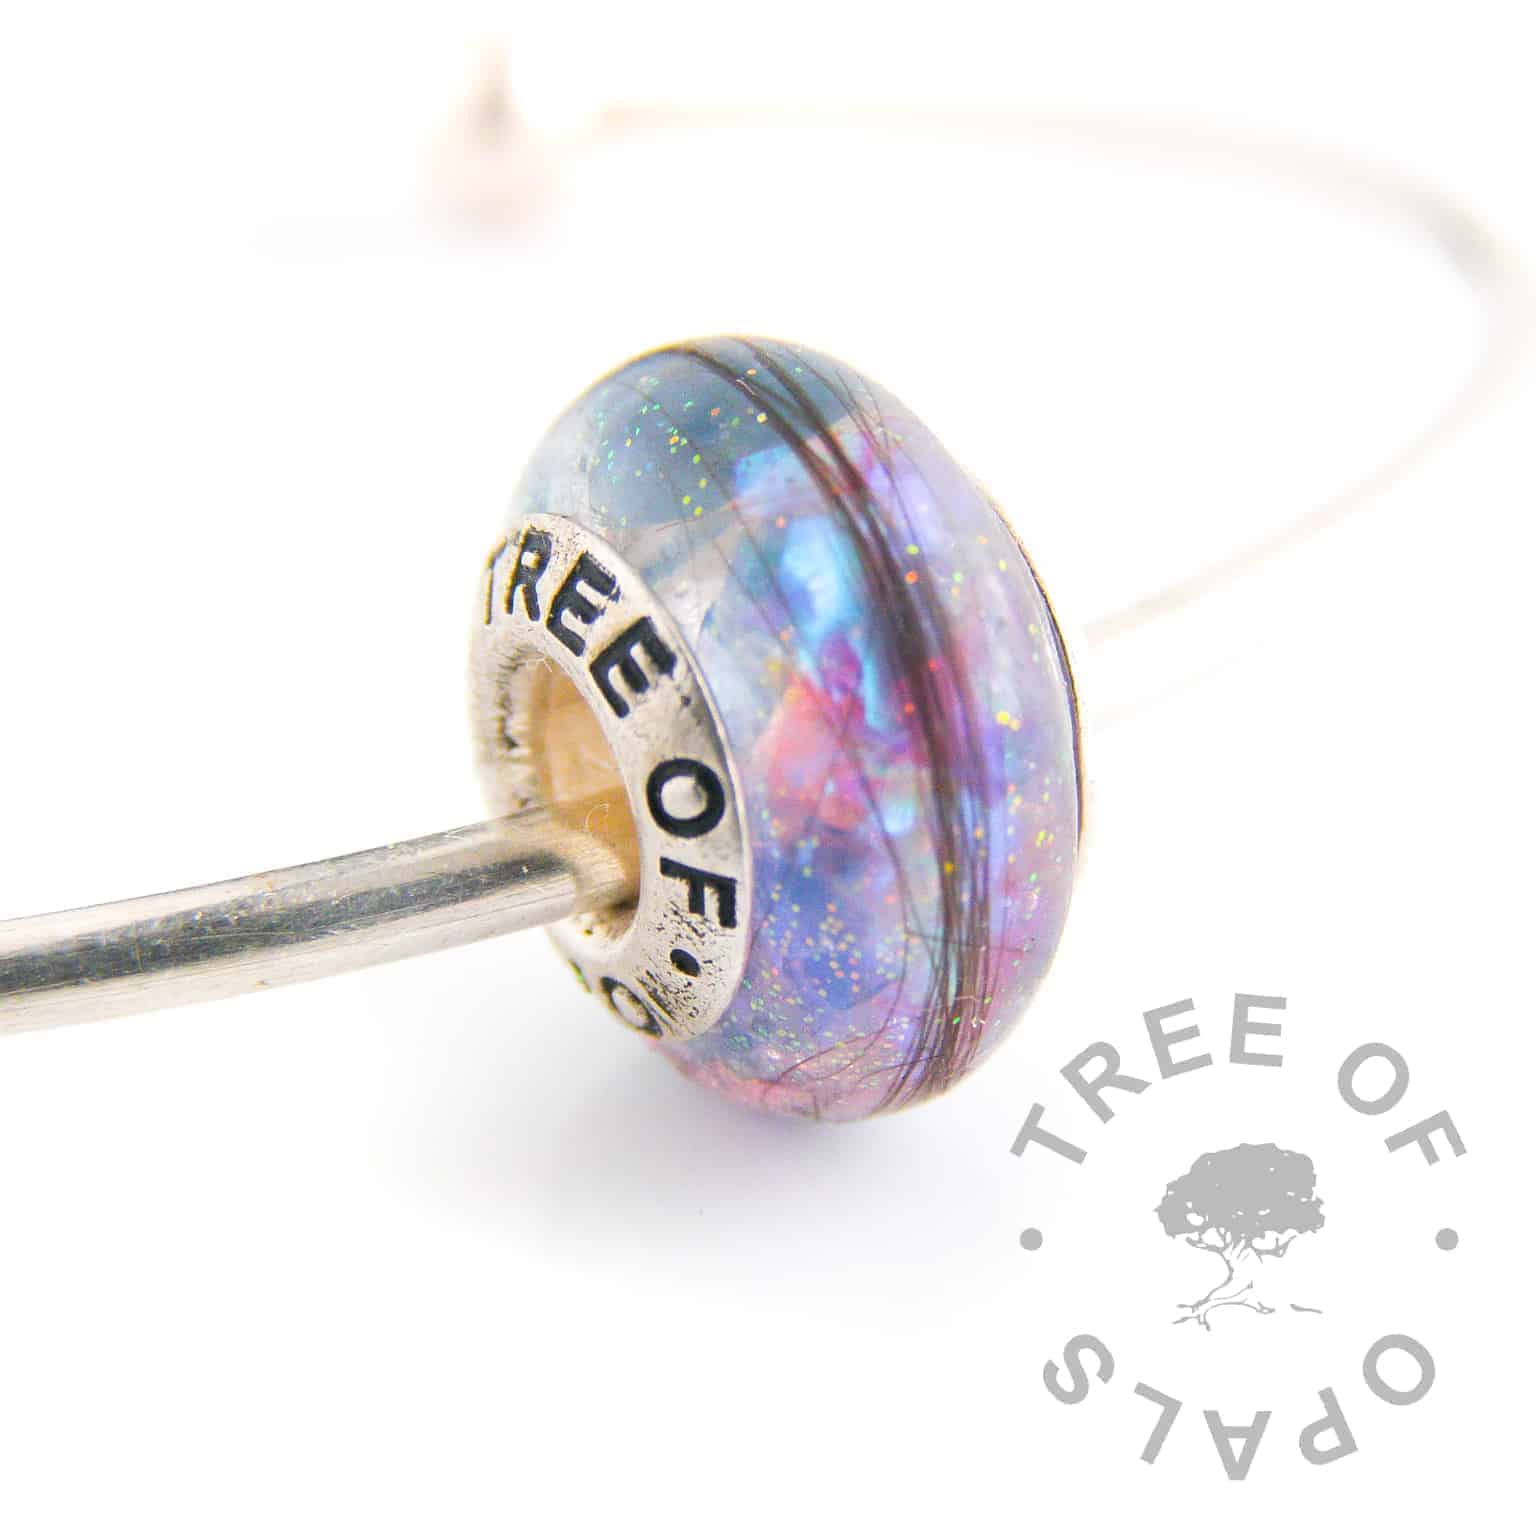 lock of hair charm bead blue topaz December birthstone and blue and pink sparkles opalescent flakes